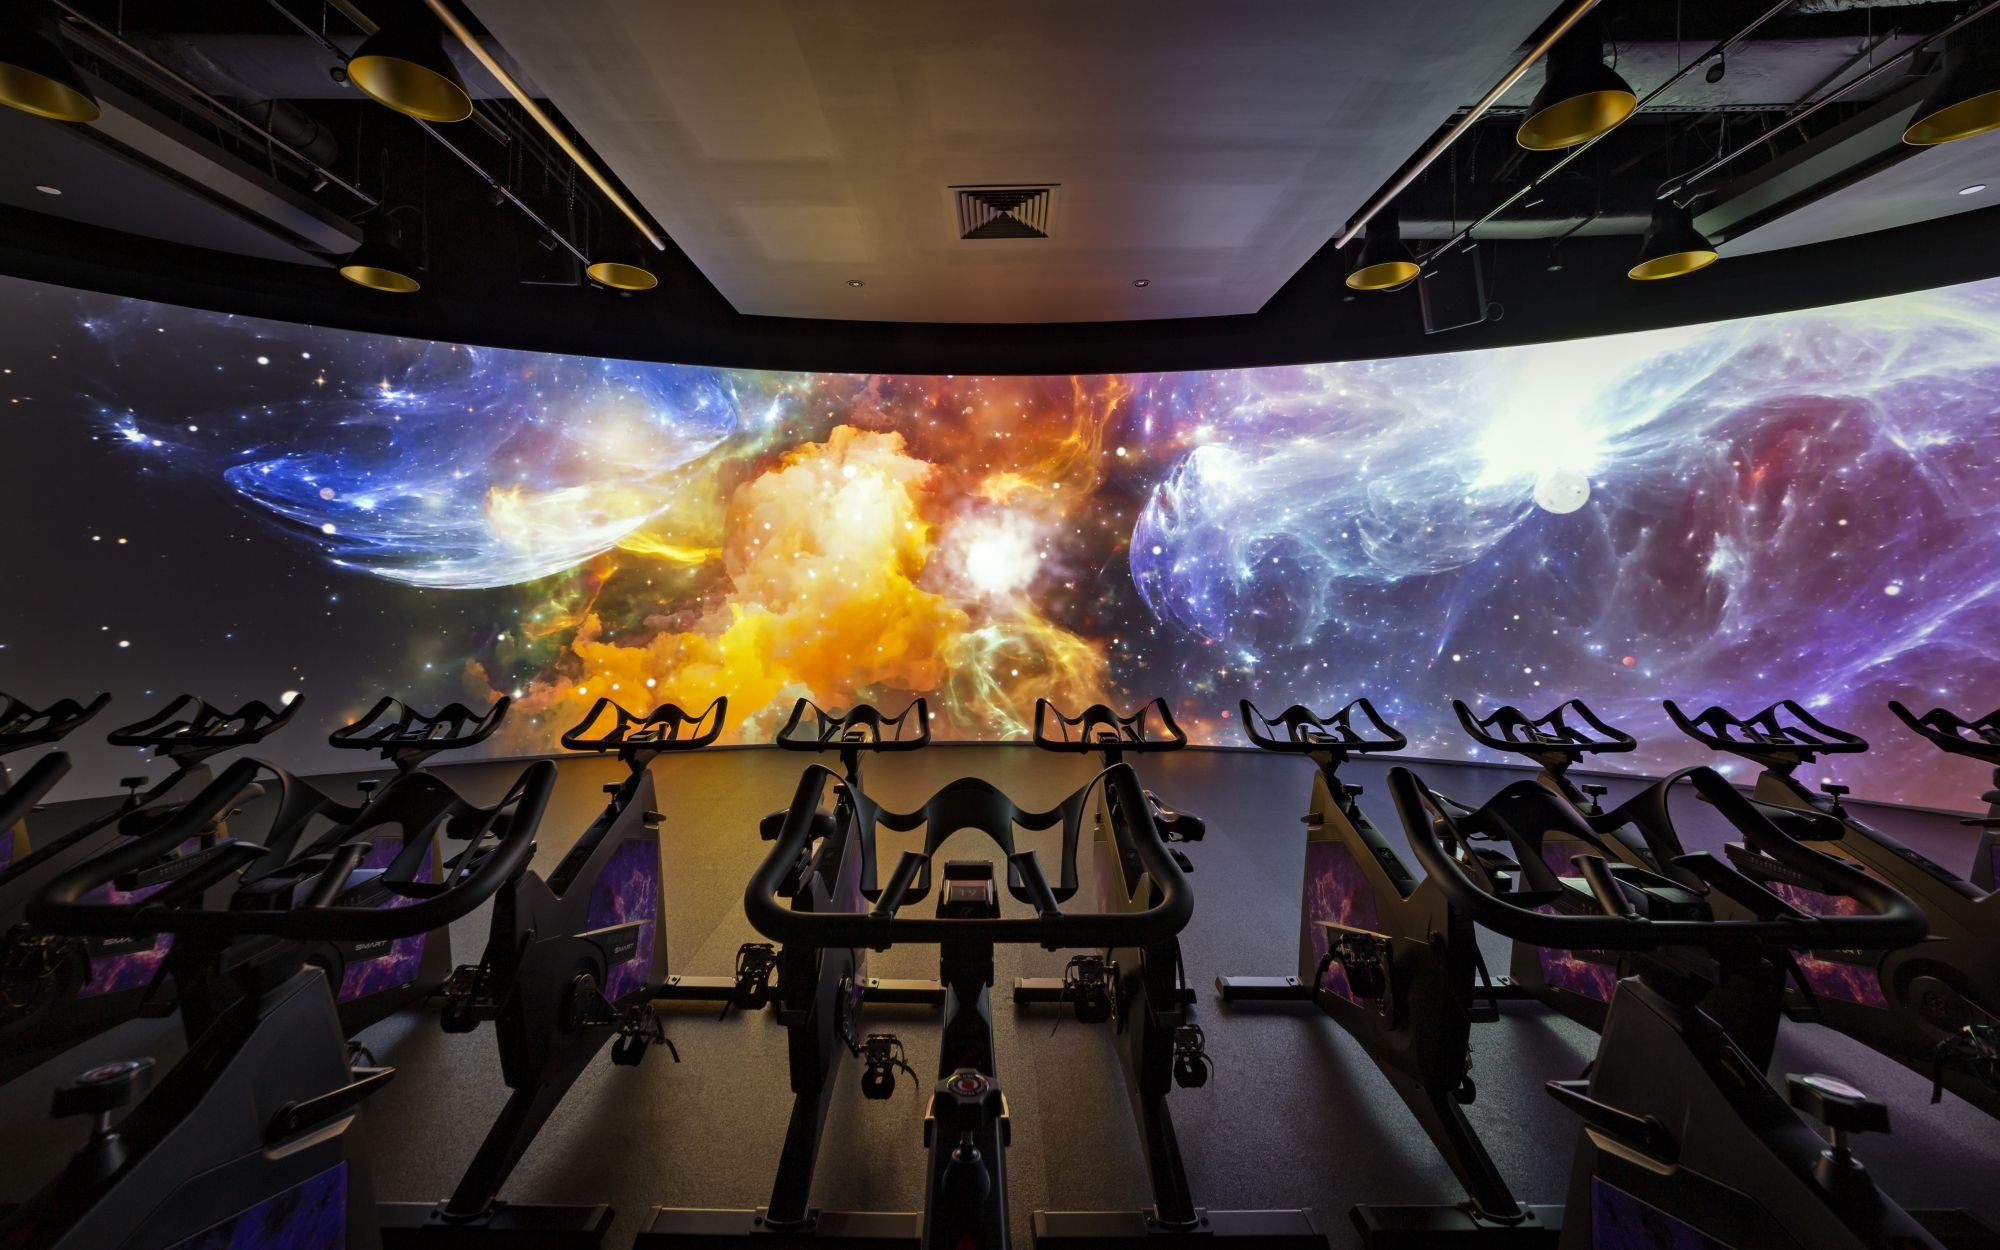 Get psyched up at the best spin classes in Singapore